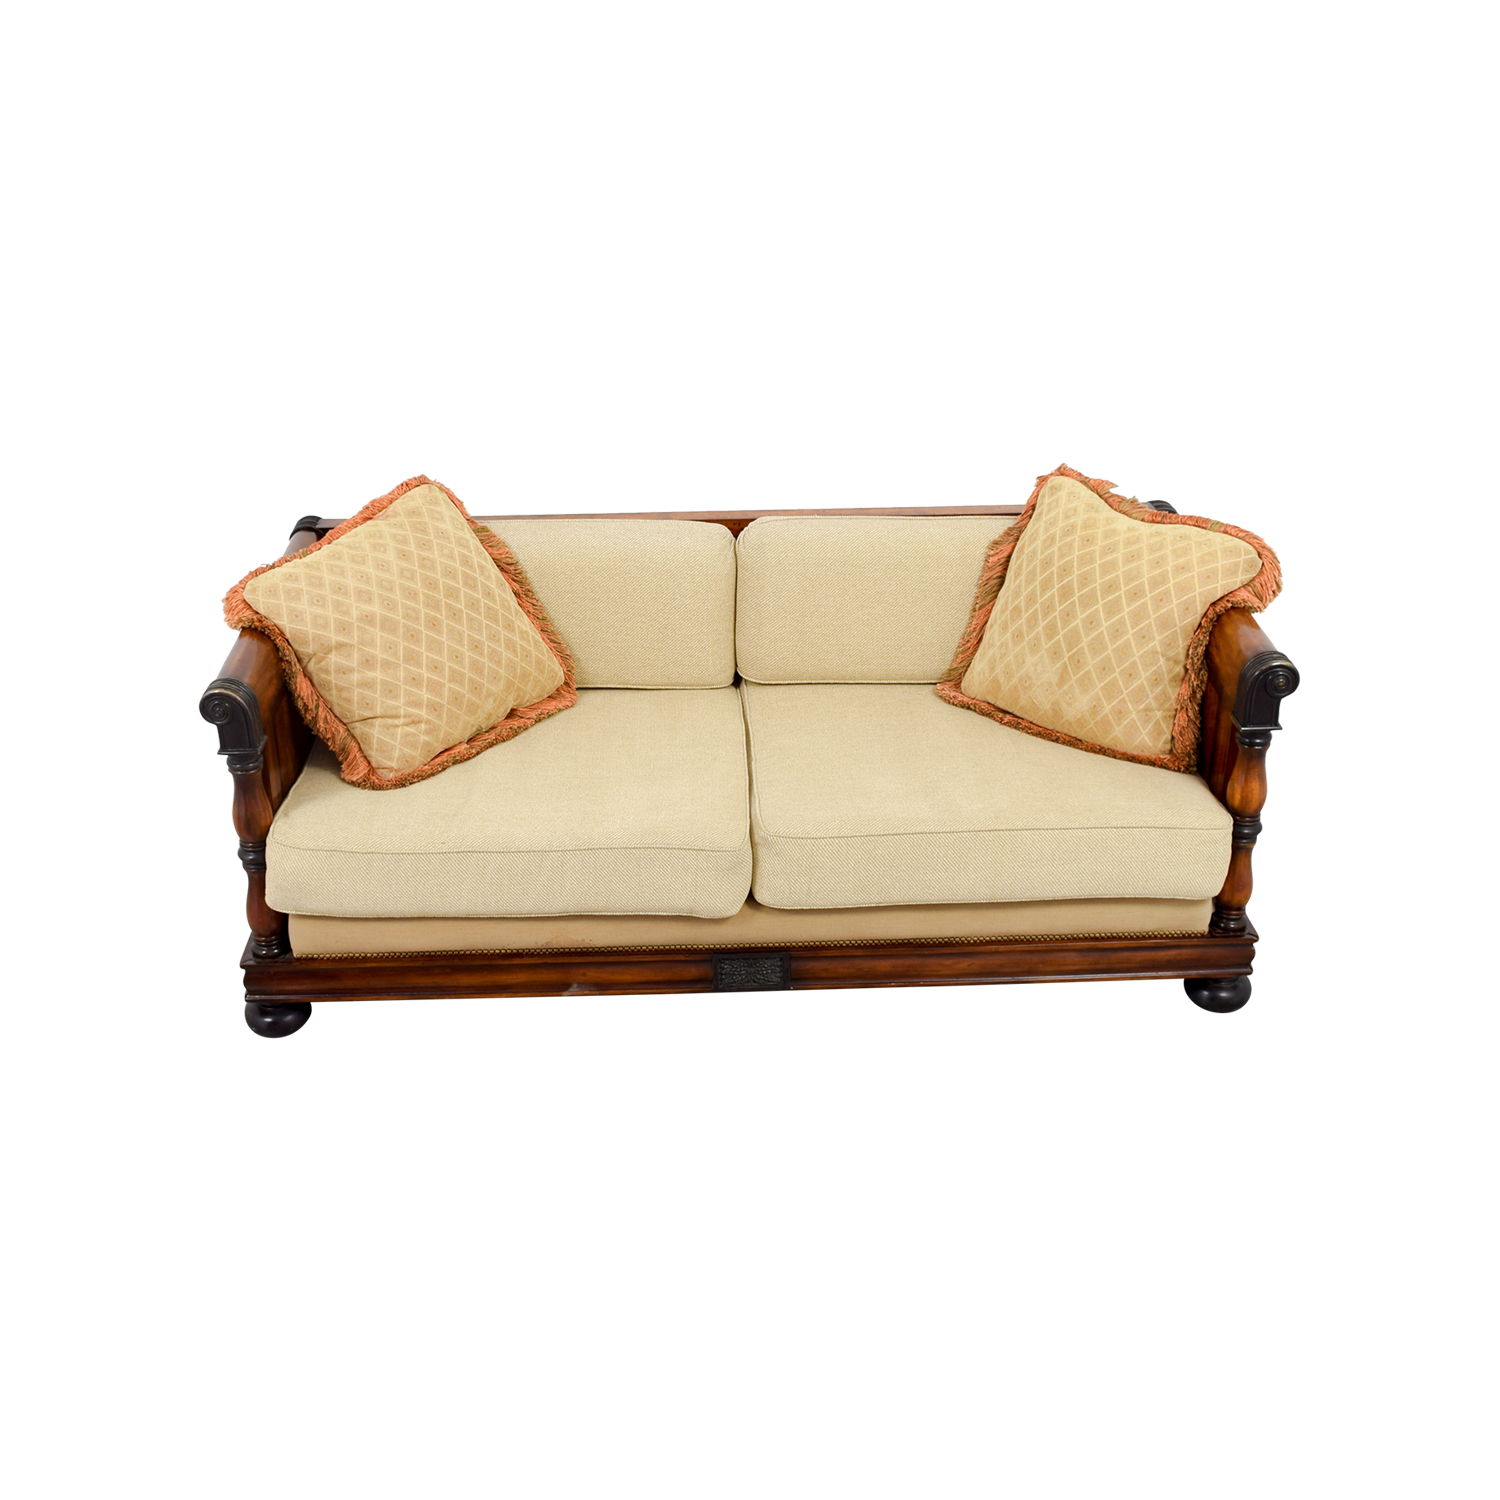 Traditional Wooden Framed Sofa nyc